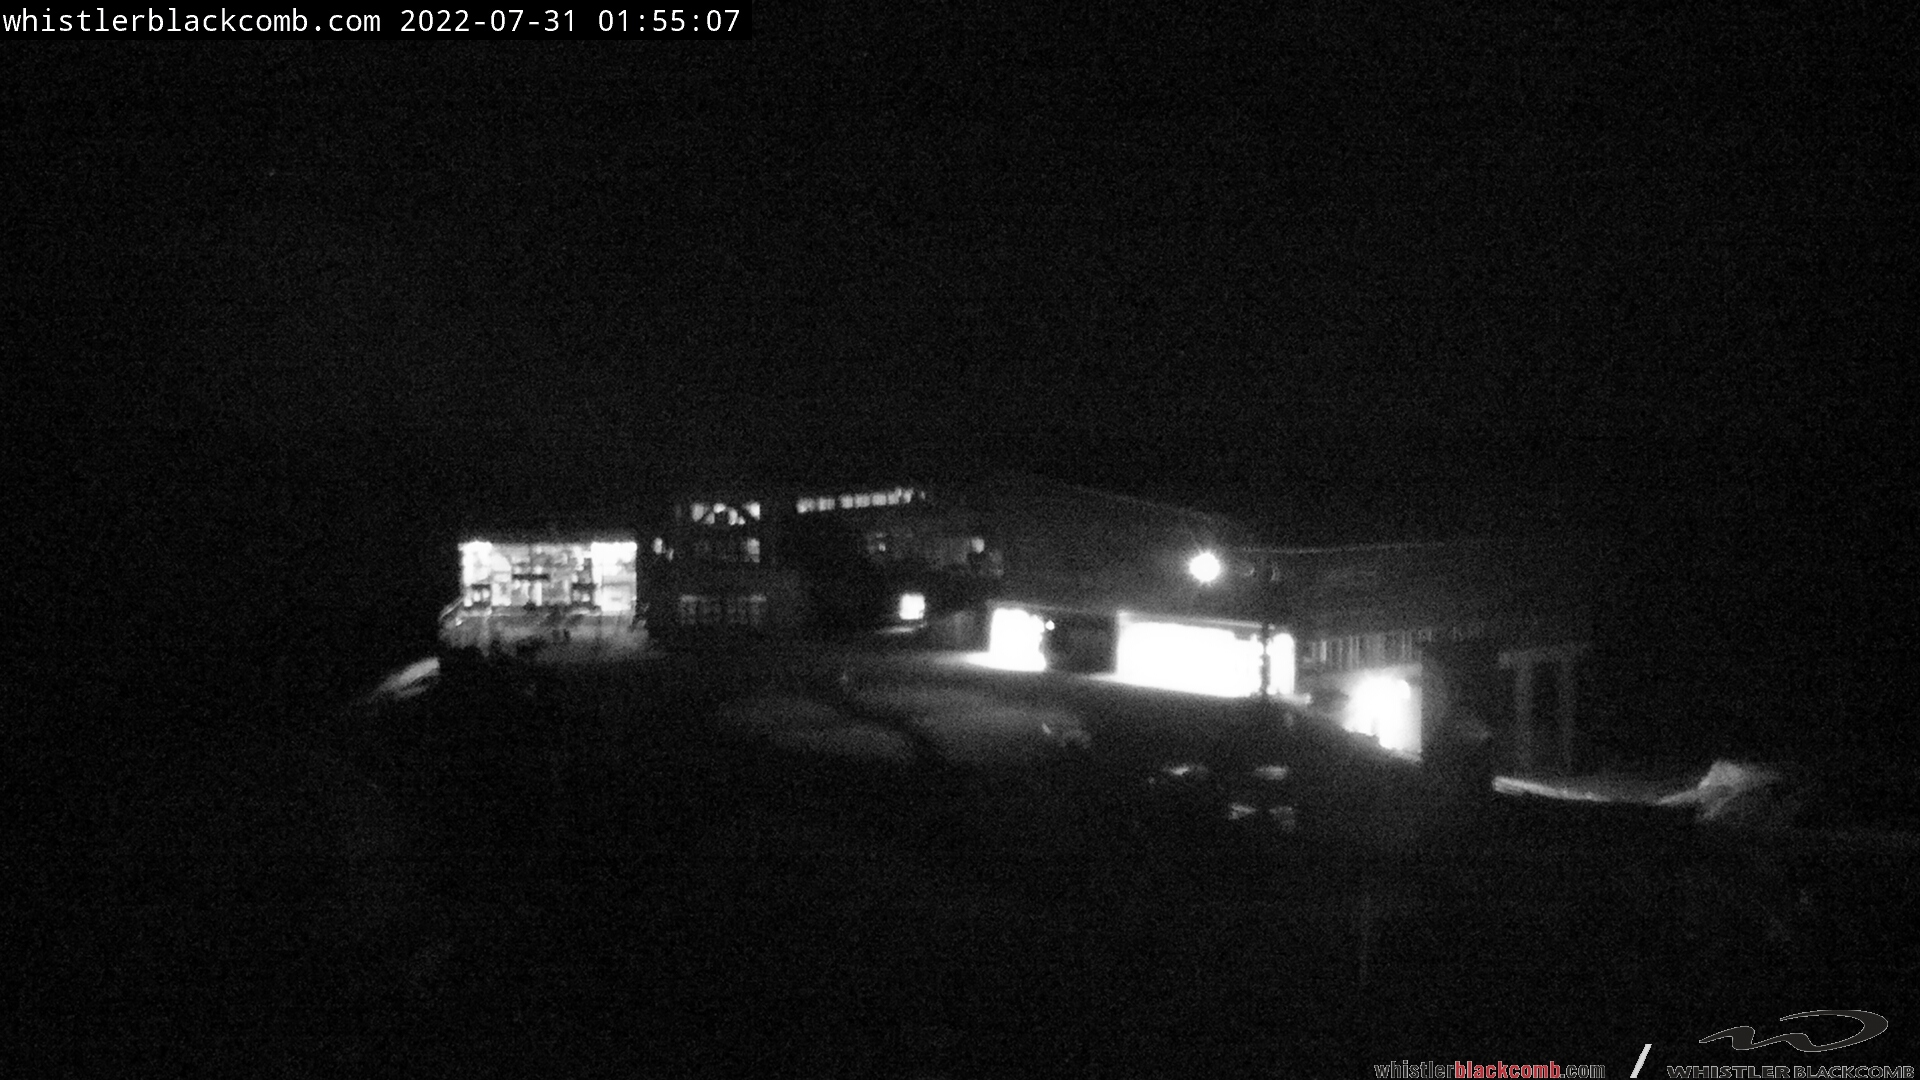 Webcam Whistler Blackcomb